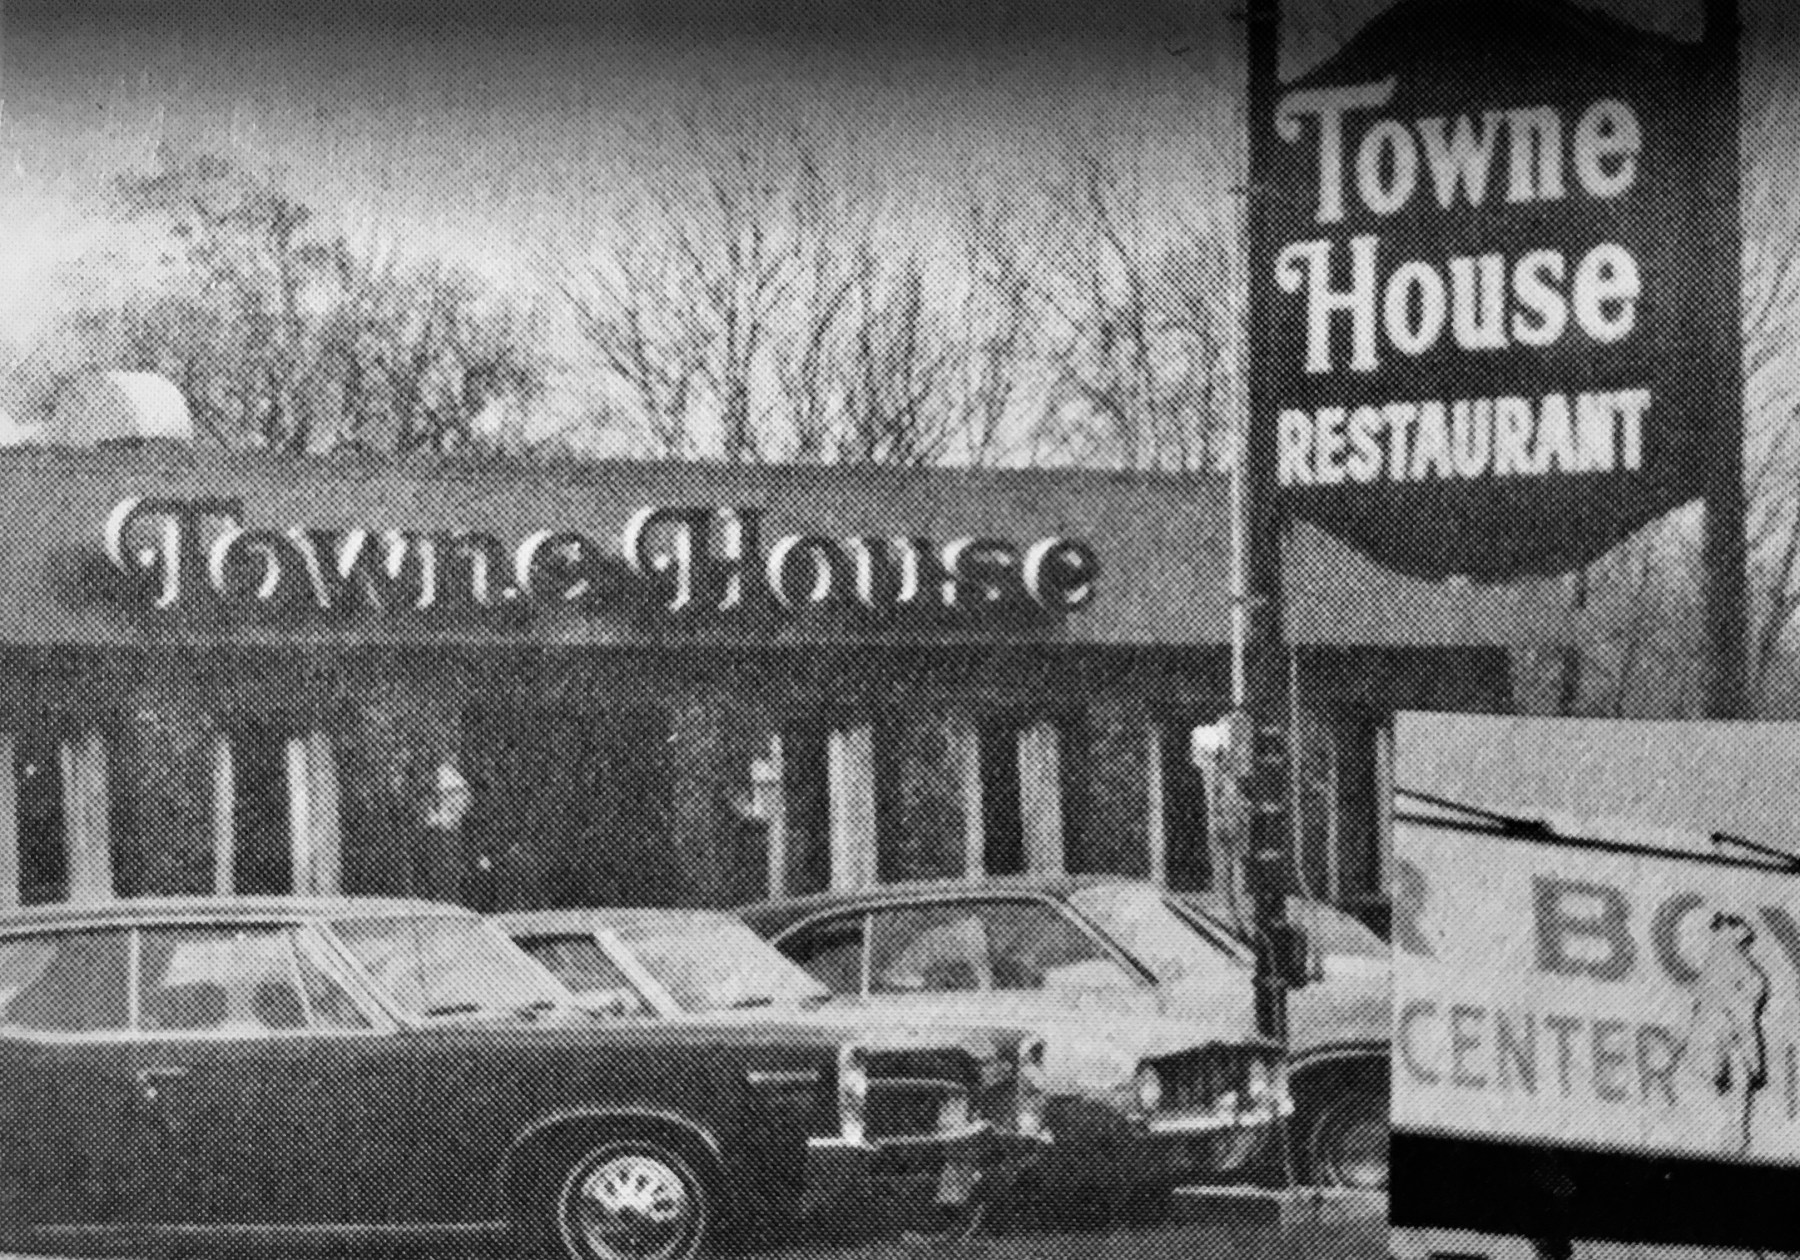 Towne House Burlington MA